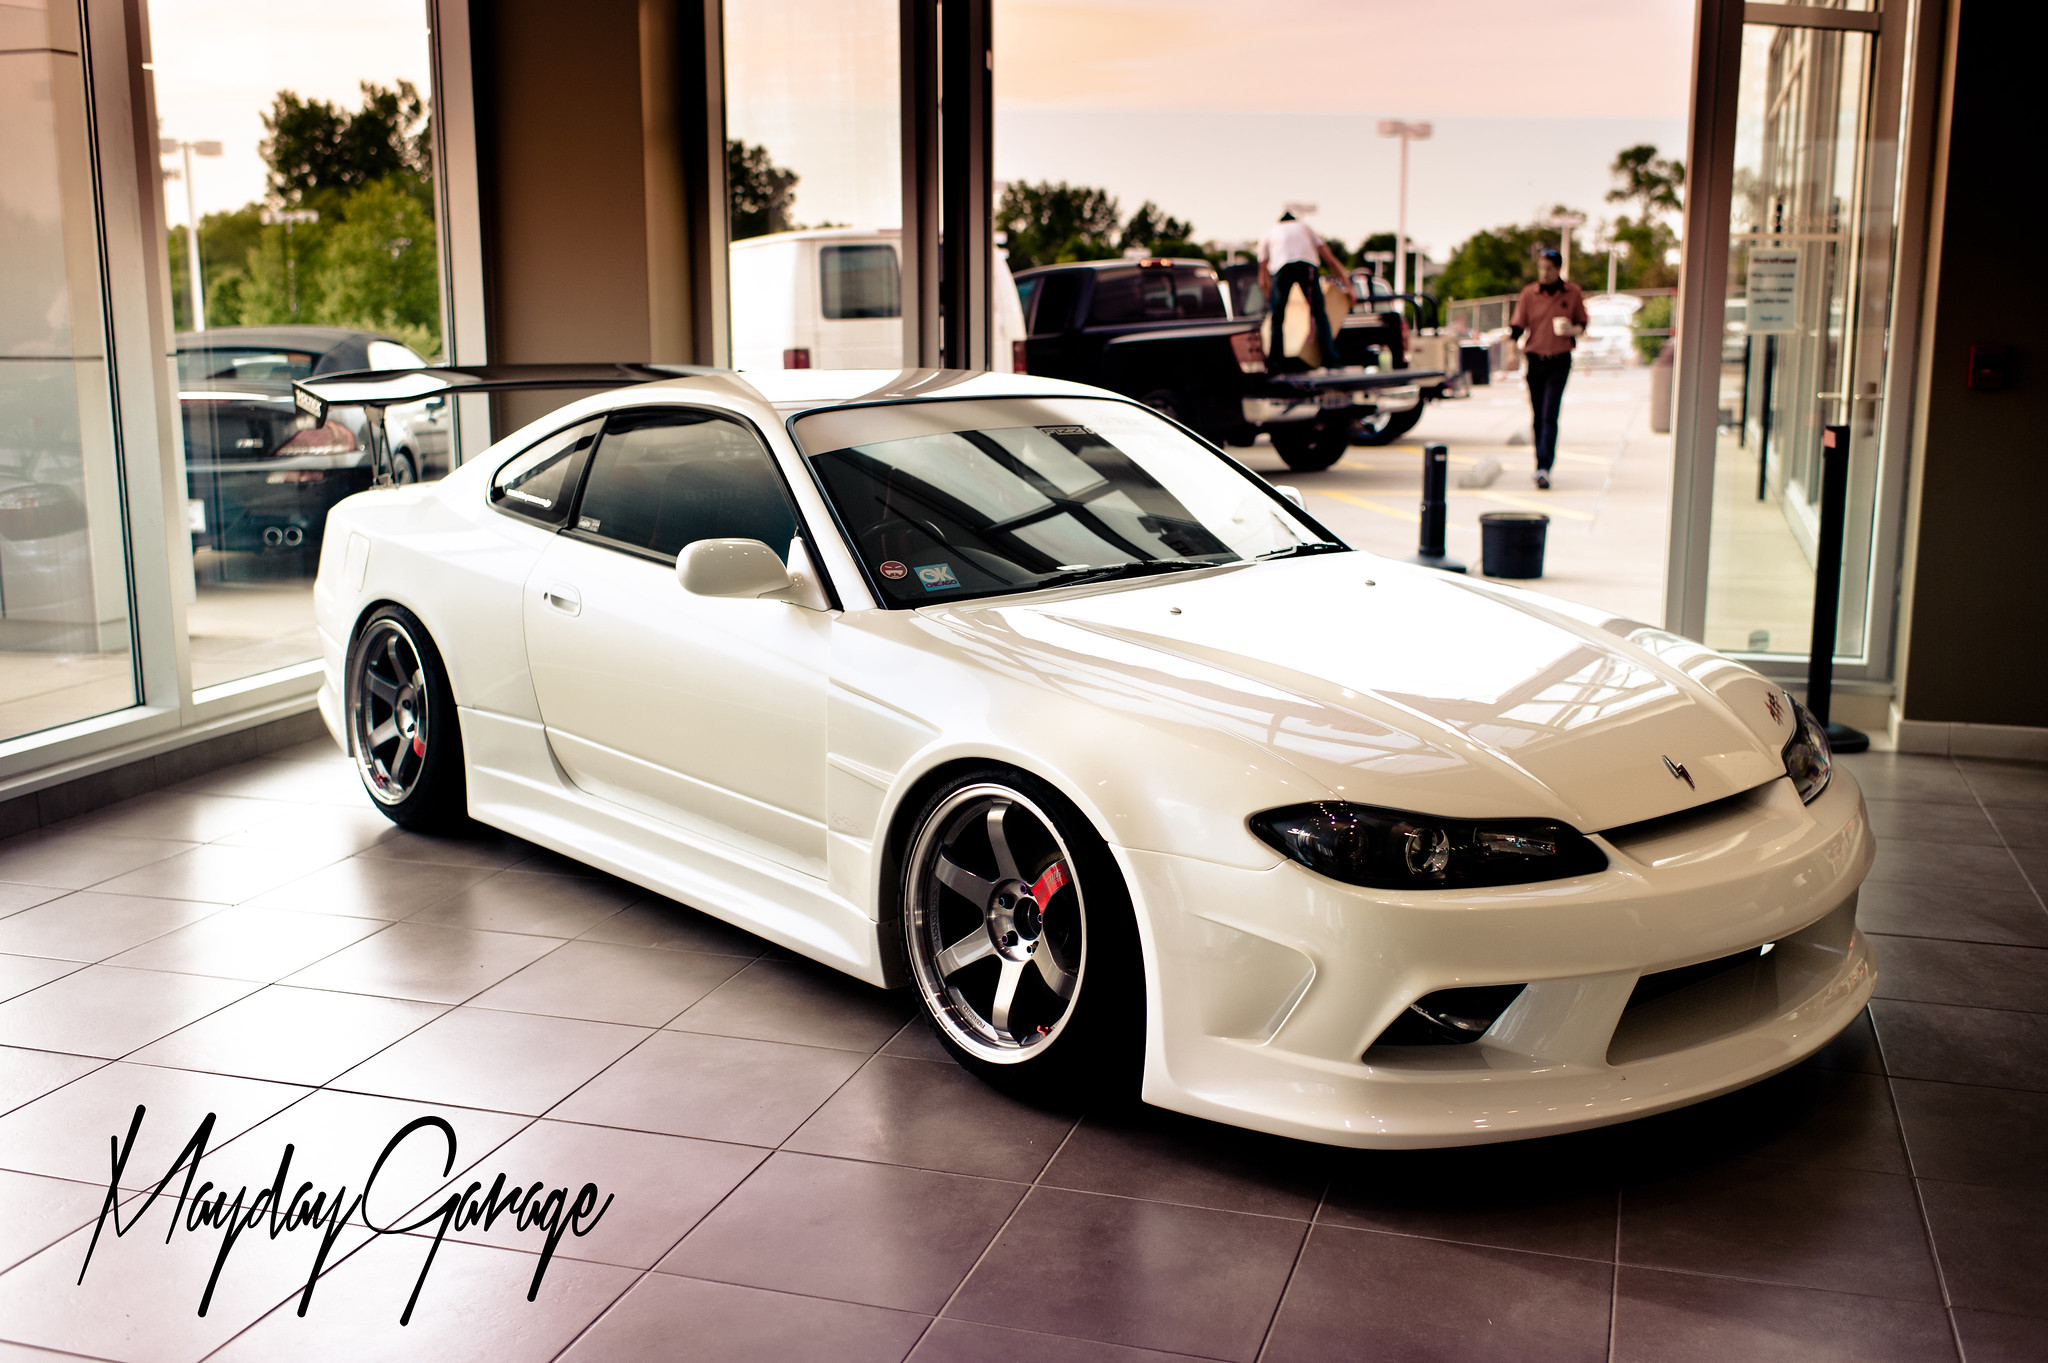 The Fizz Auto S15 looking wide AF